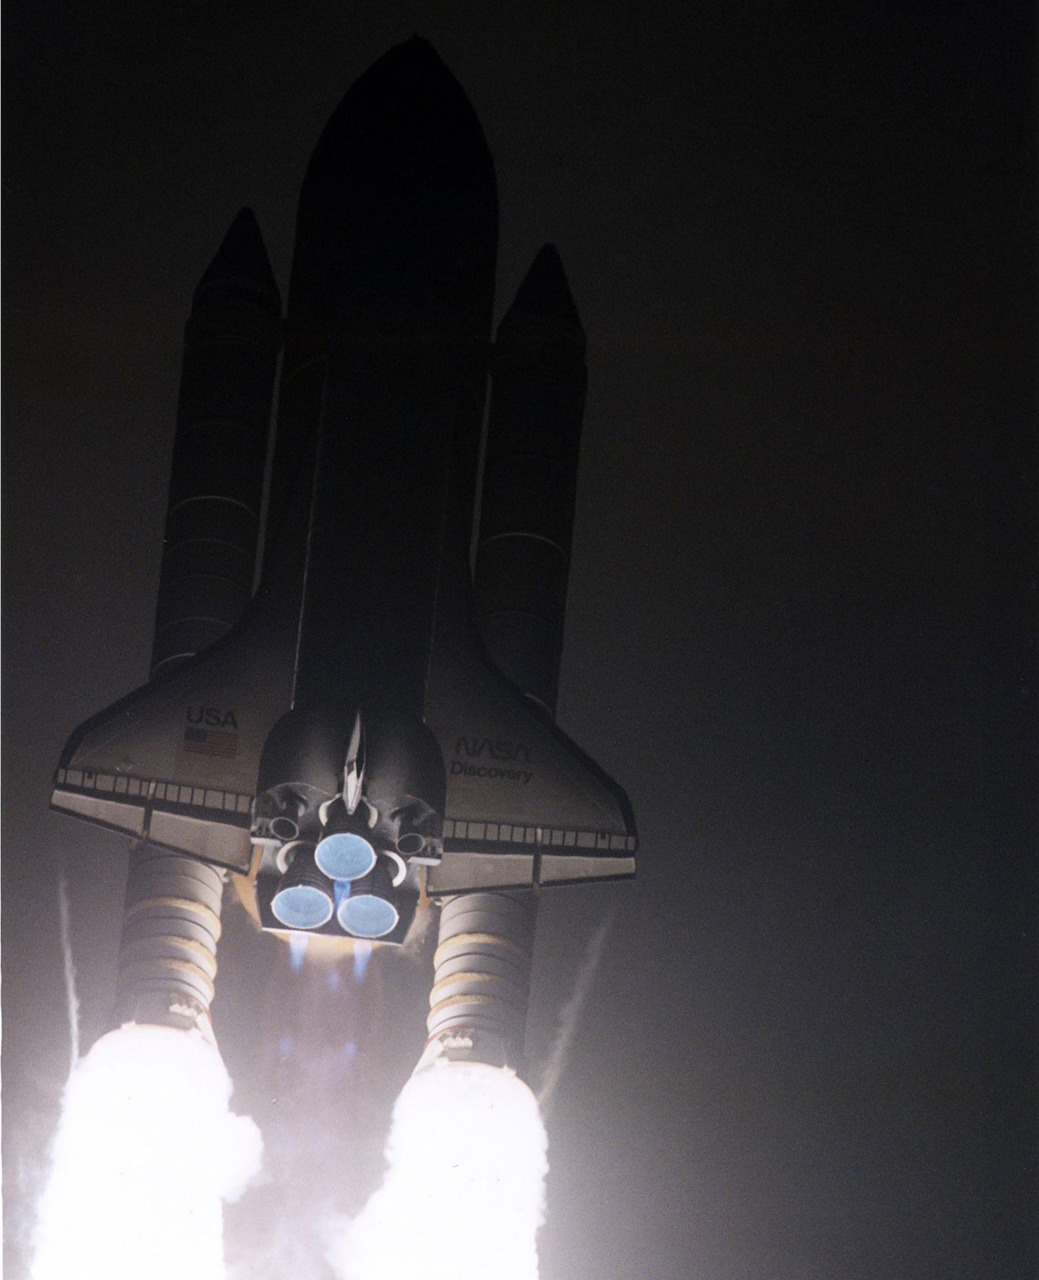 The Space Shuttle Discovery cuts a bright swath through the early-morning darkness as it lifts off from Launch Pad 39A on a scheduled 10-day flight to service the Hubble Space Telescope. (NASA)